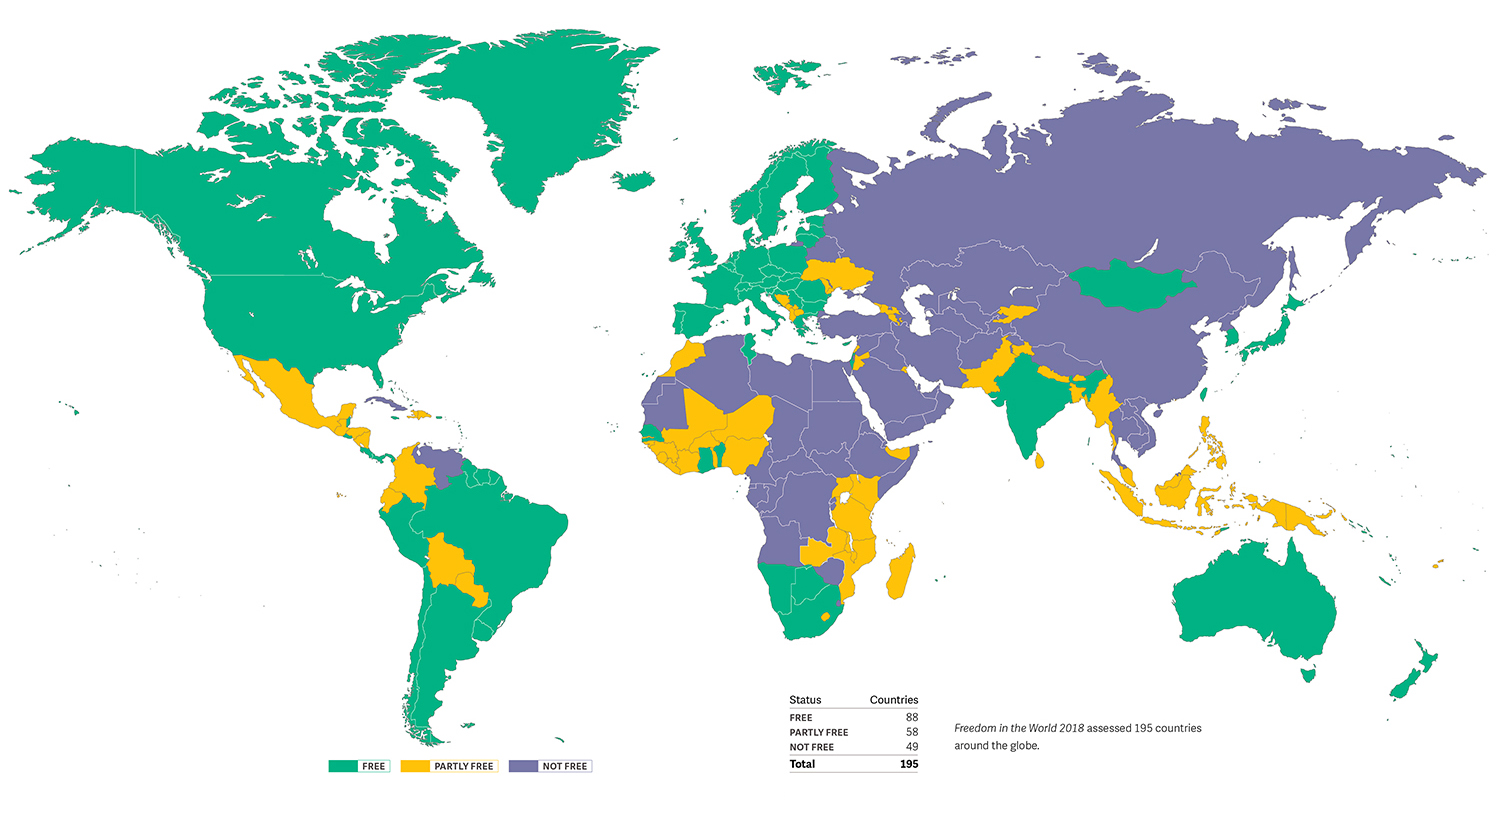 2018 Freedom in the World map